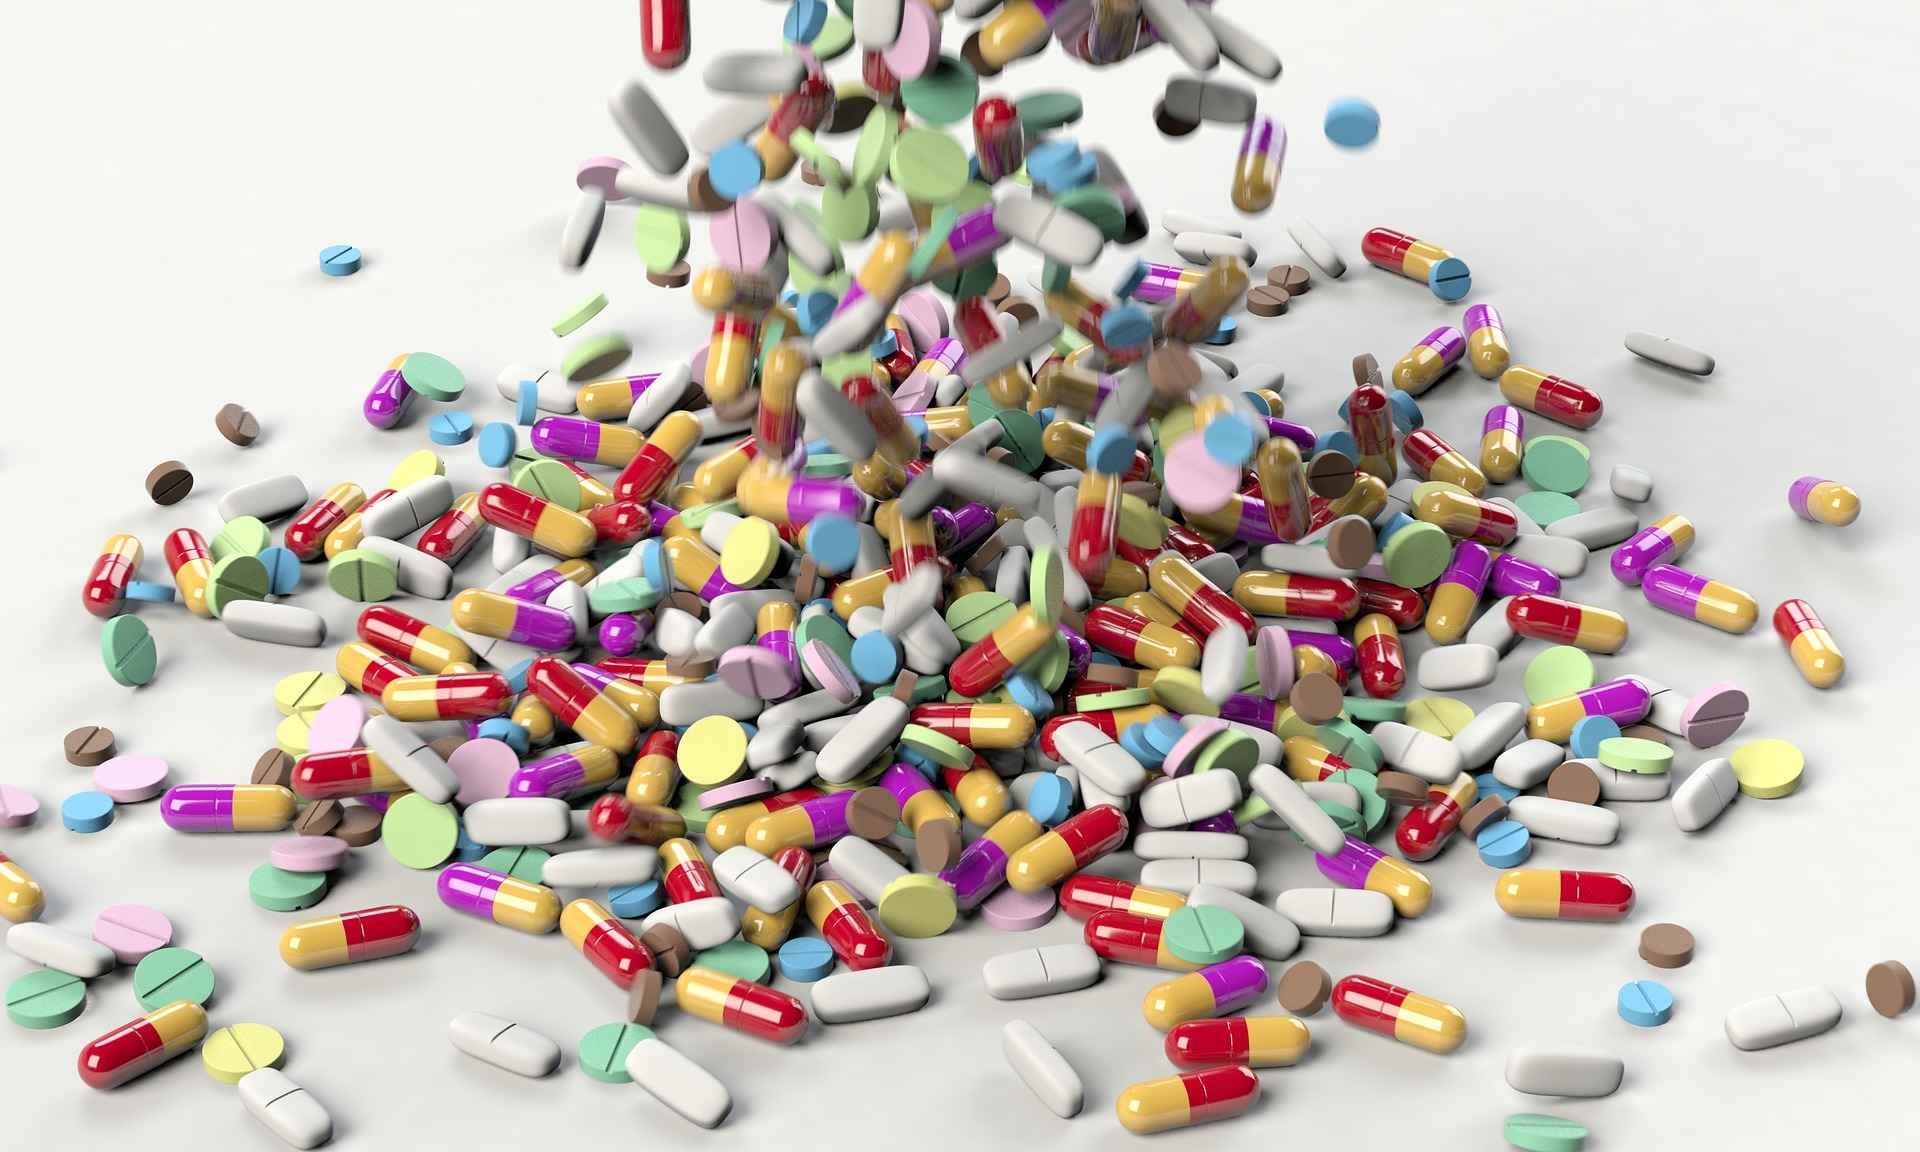 a mound of pills and medication